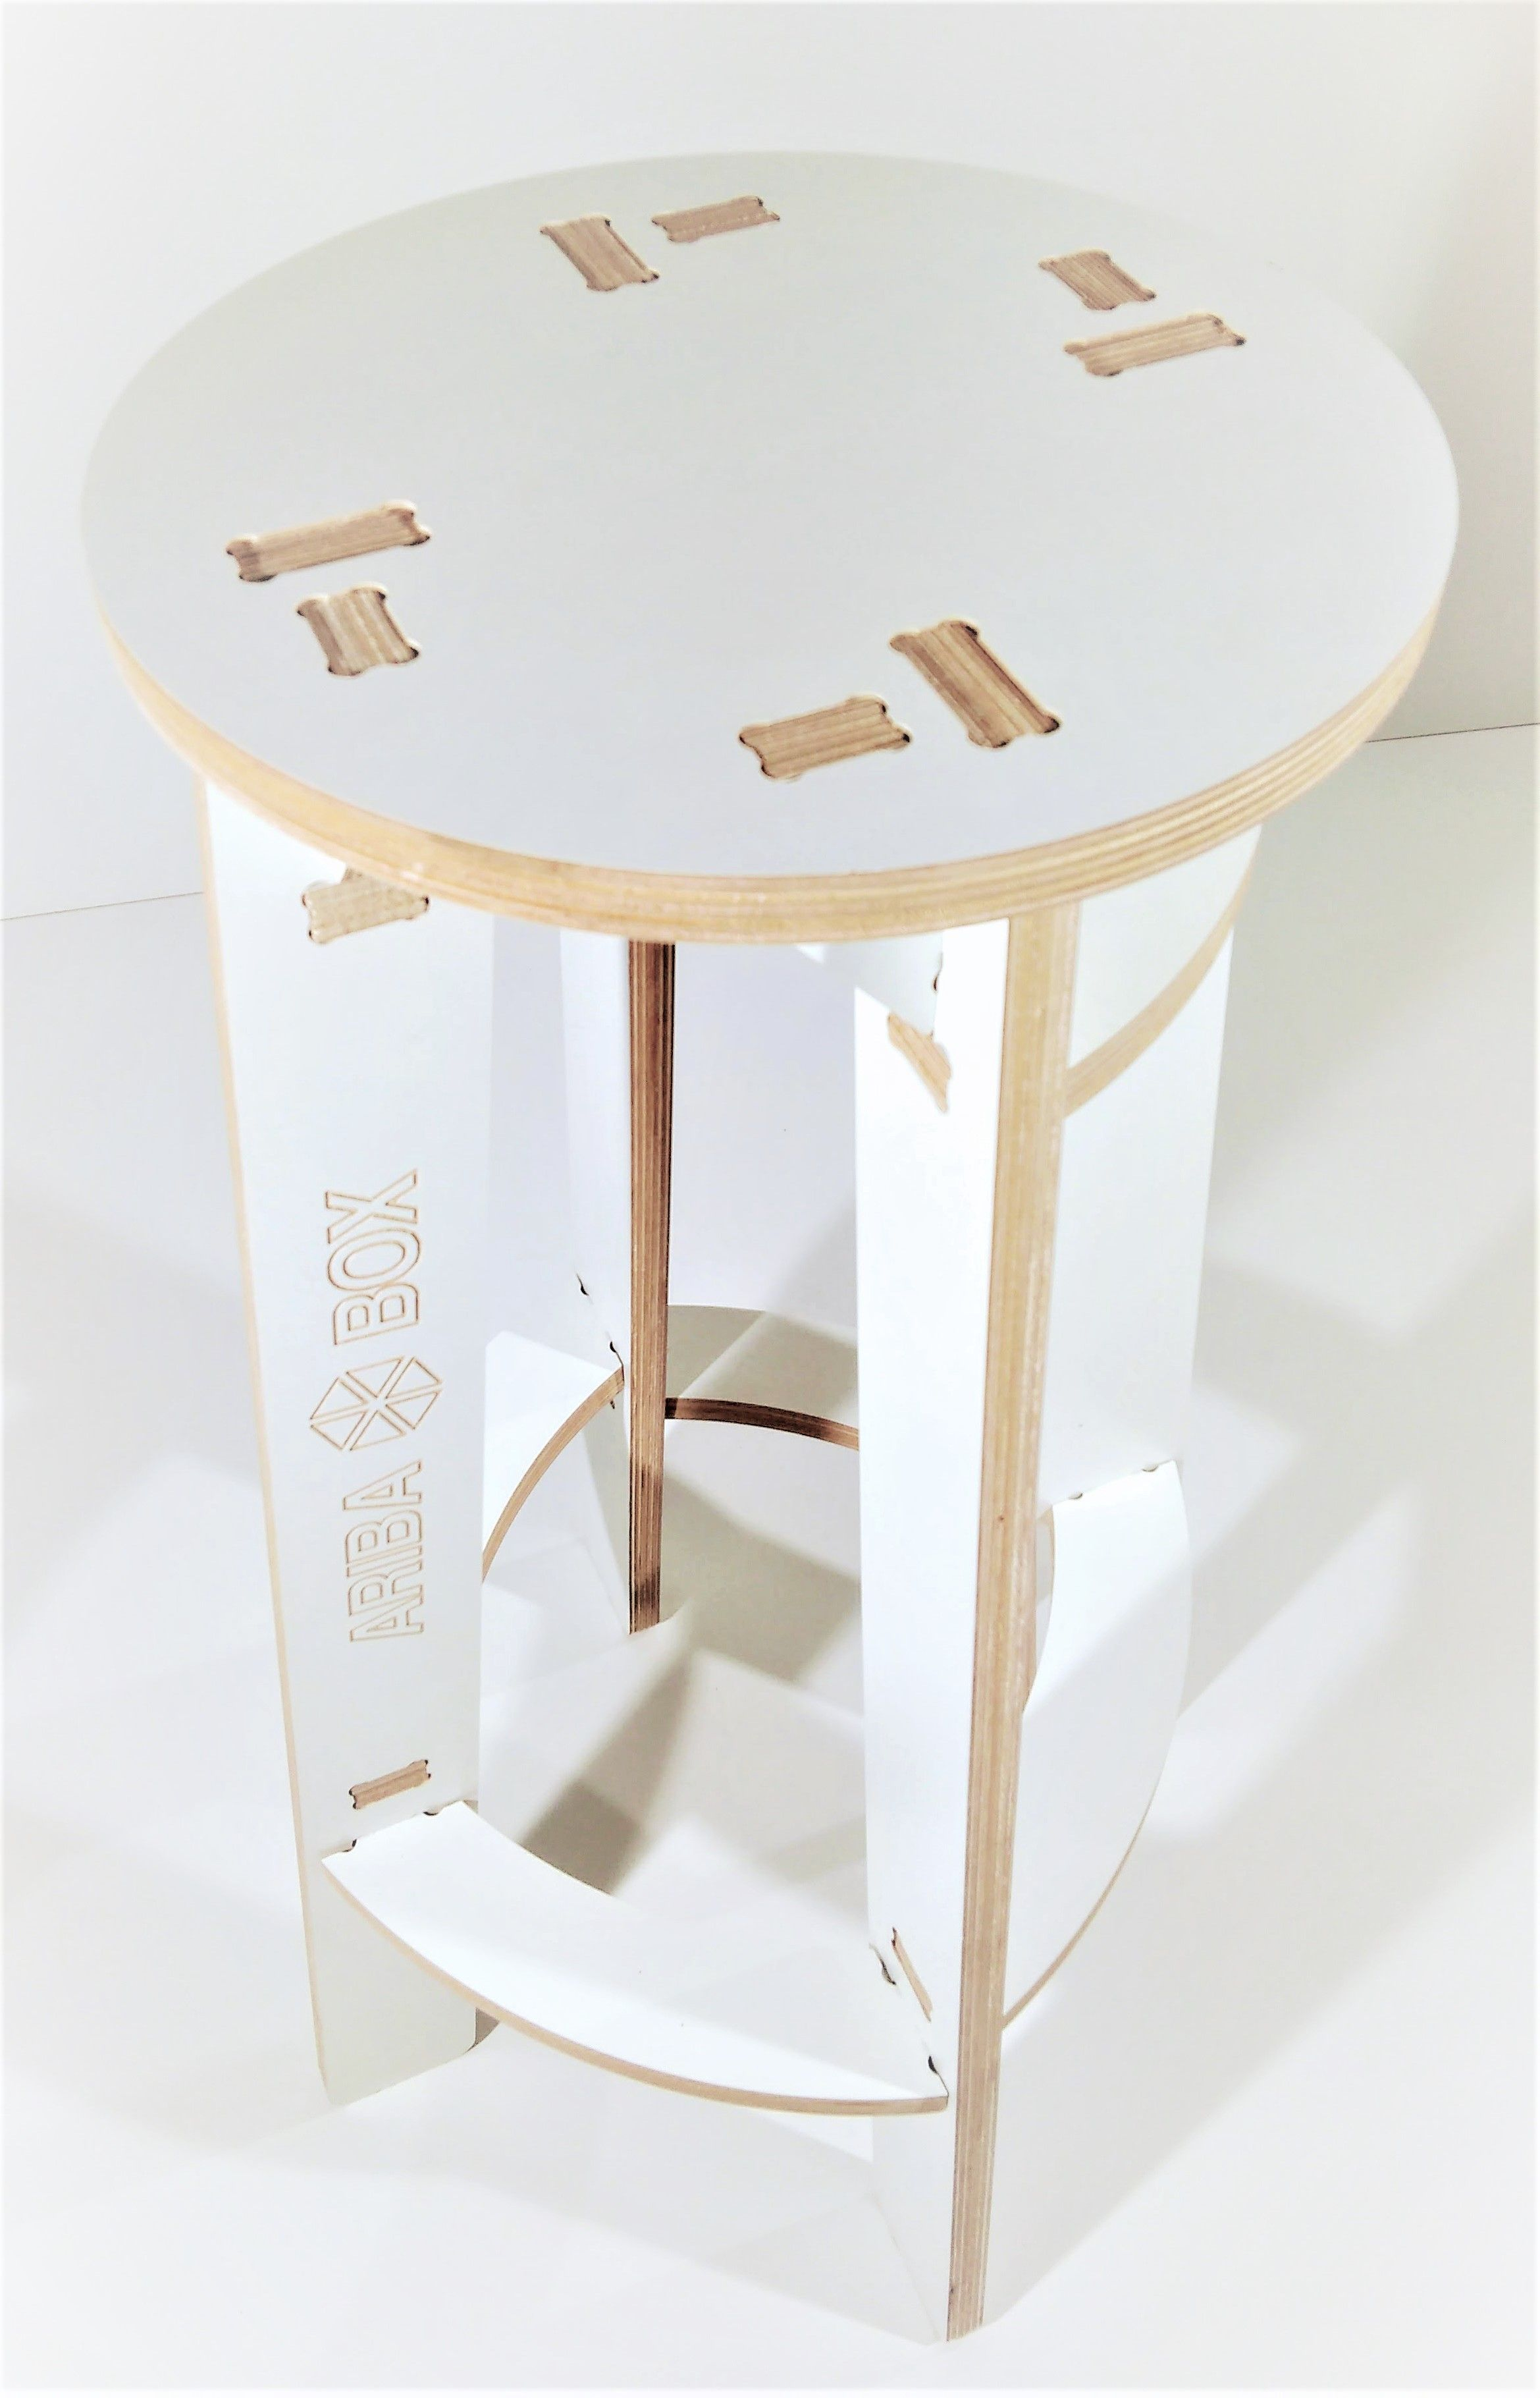 Enjoyable Plywood Bar Stool Made On Cnc In 2019 Furniture Caraccident5 Cool Chair Designs And Ideas Caraccident5Info